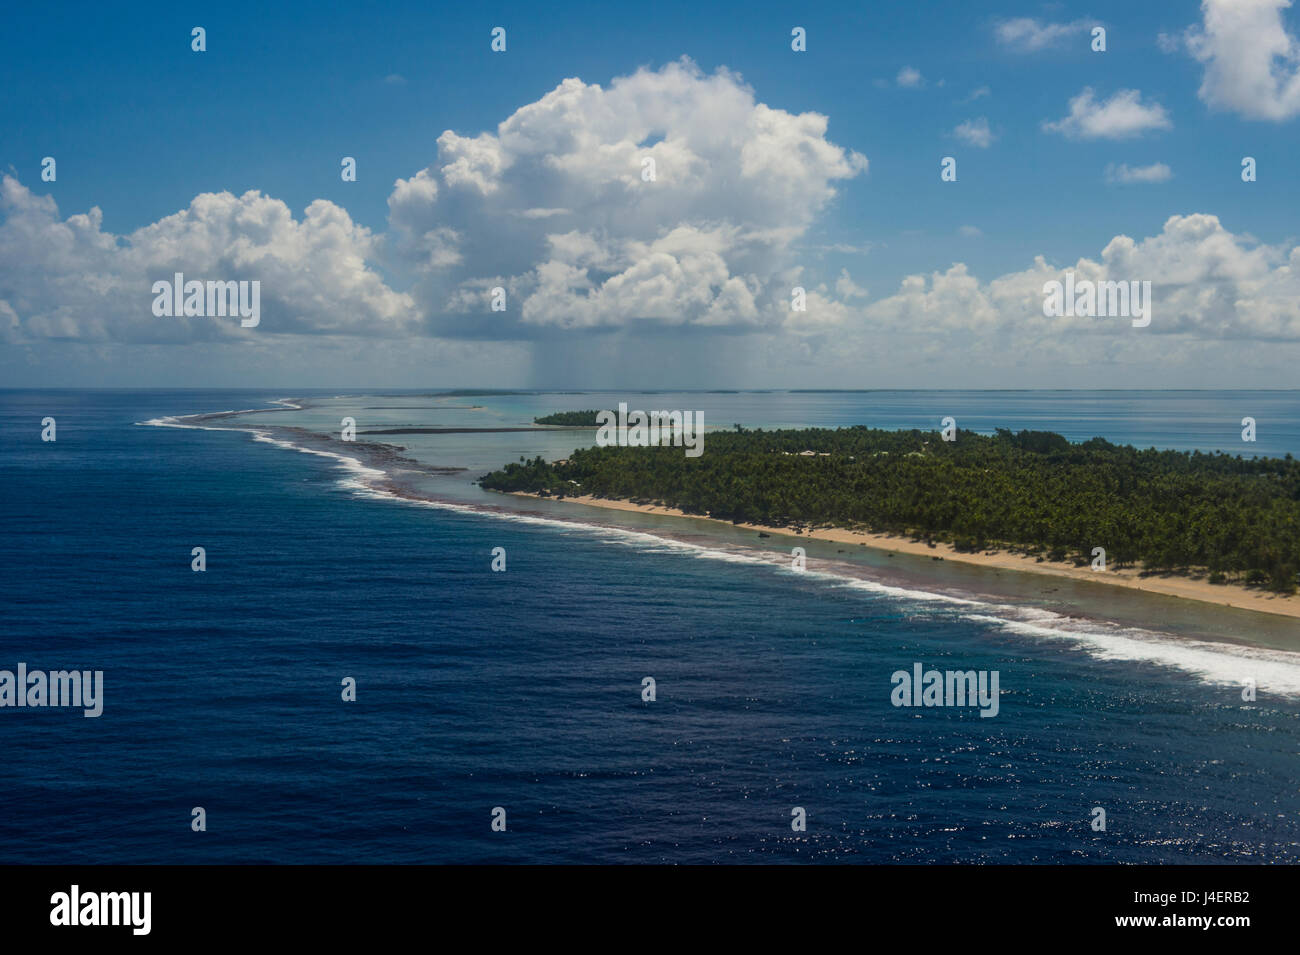 Aerial of Tikehau, Tuamotus, French Polynesia, Pacific - Stock Image